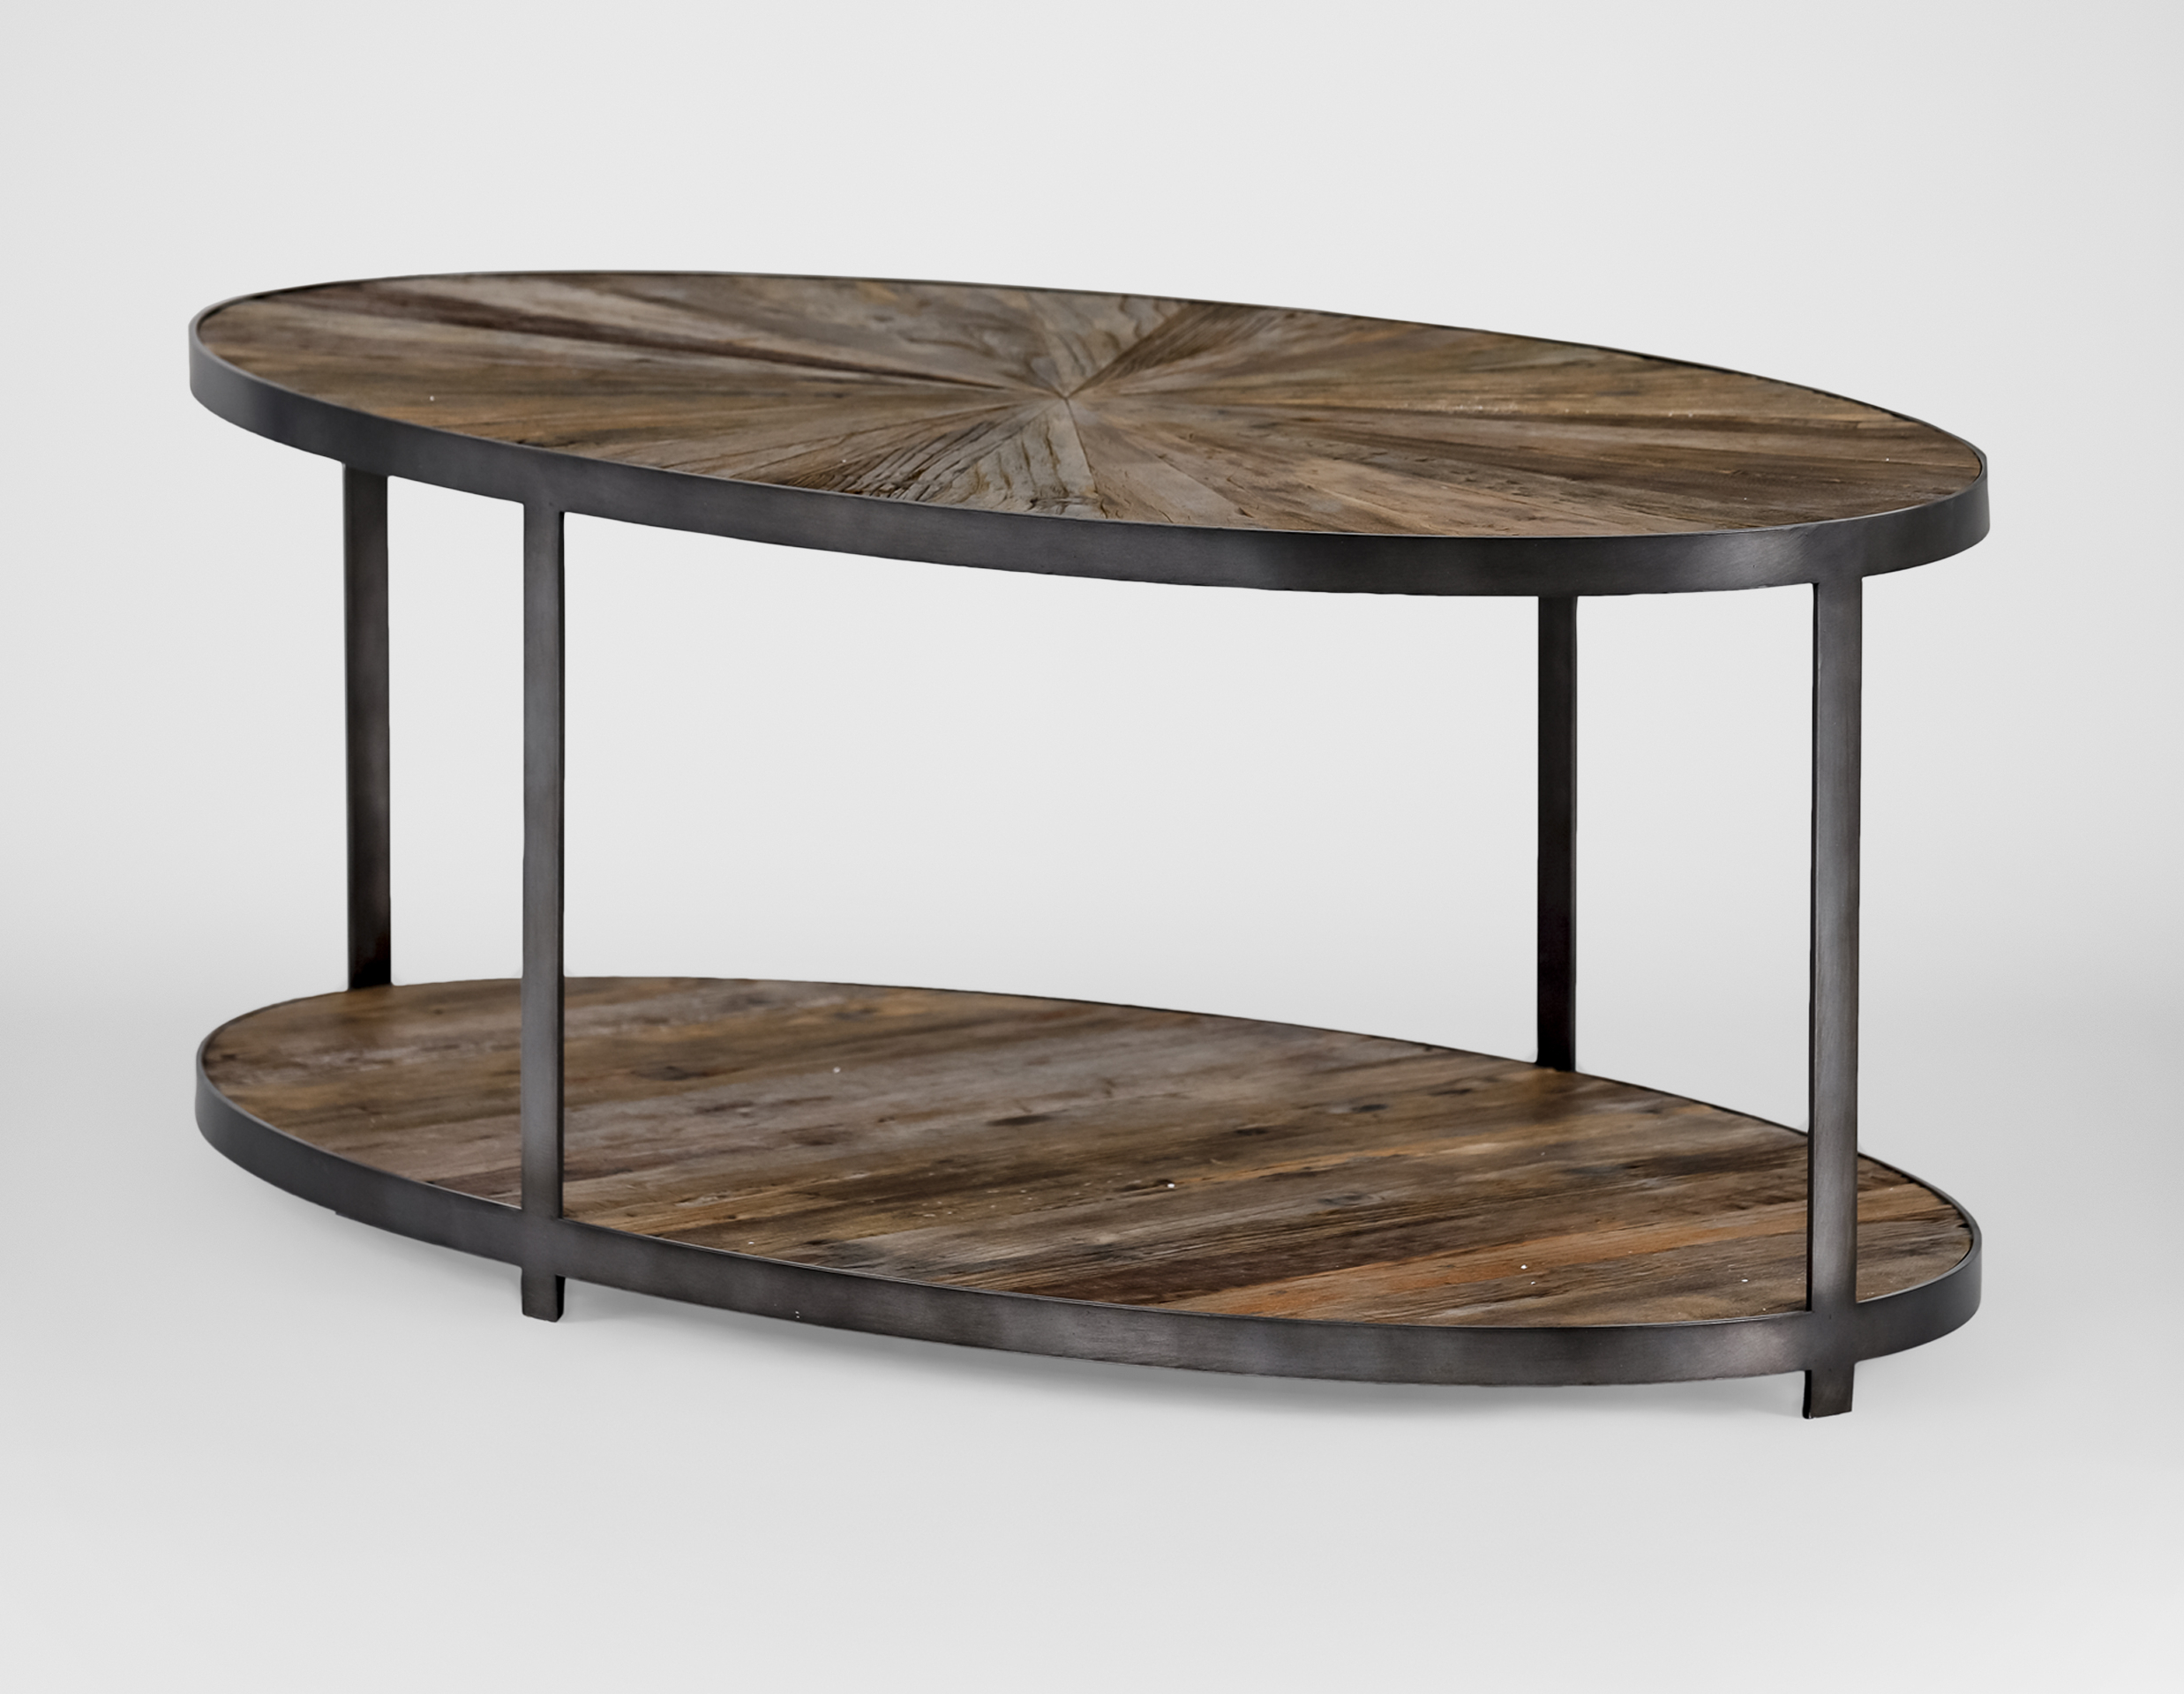 Ronald Coffee Table For Best And Newest Reclaimed Elm Iron Coffee Tables (View 8 of 20)